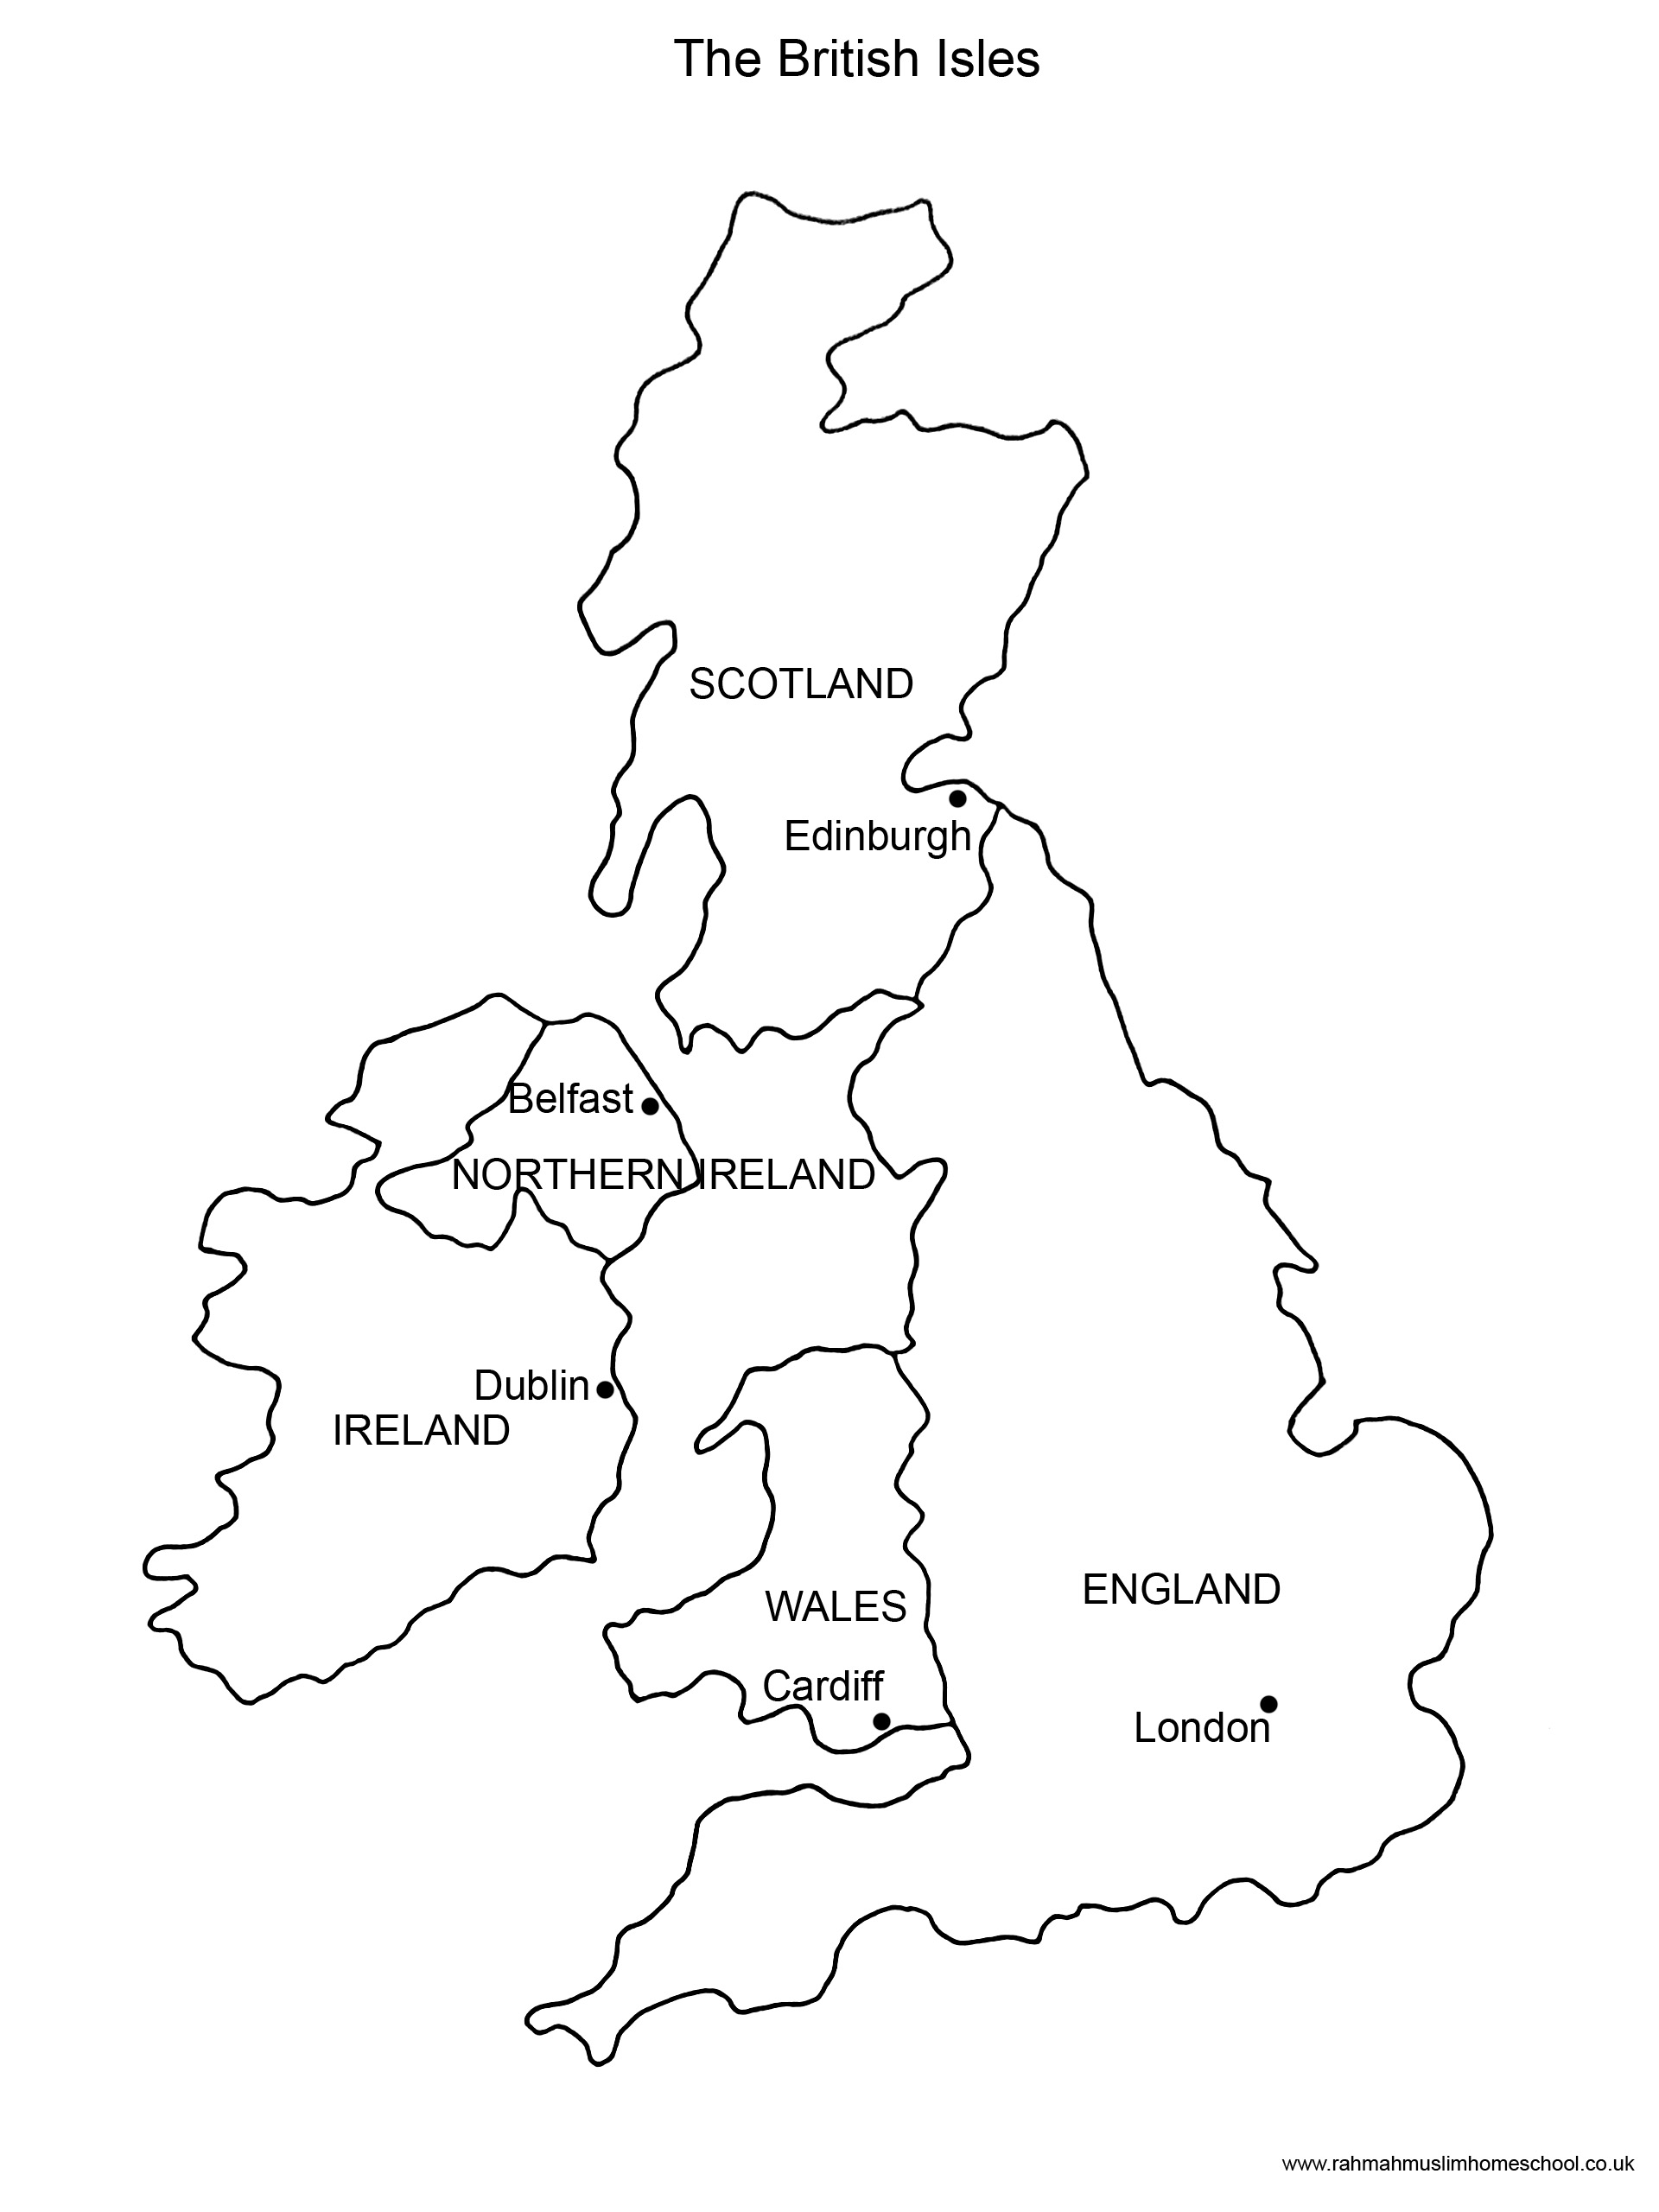 Geography The British Isles